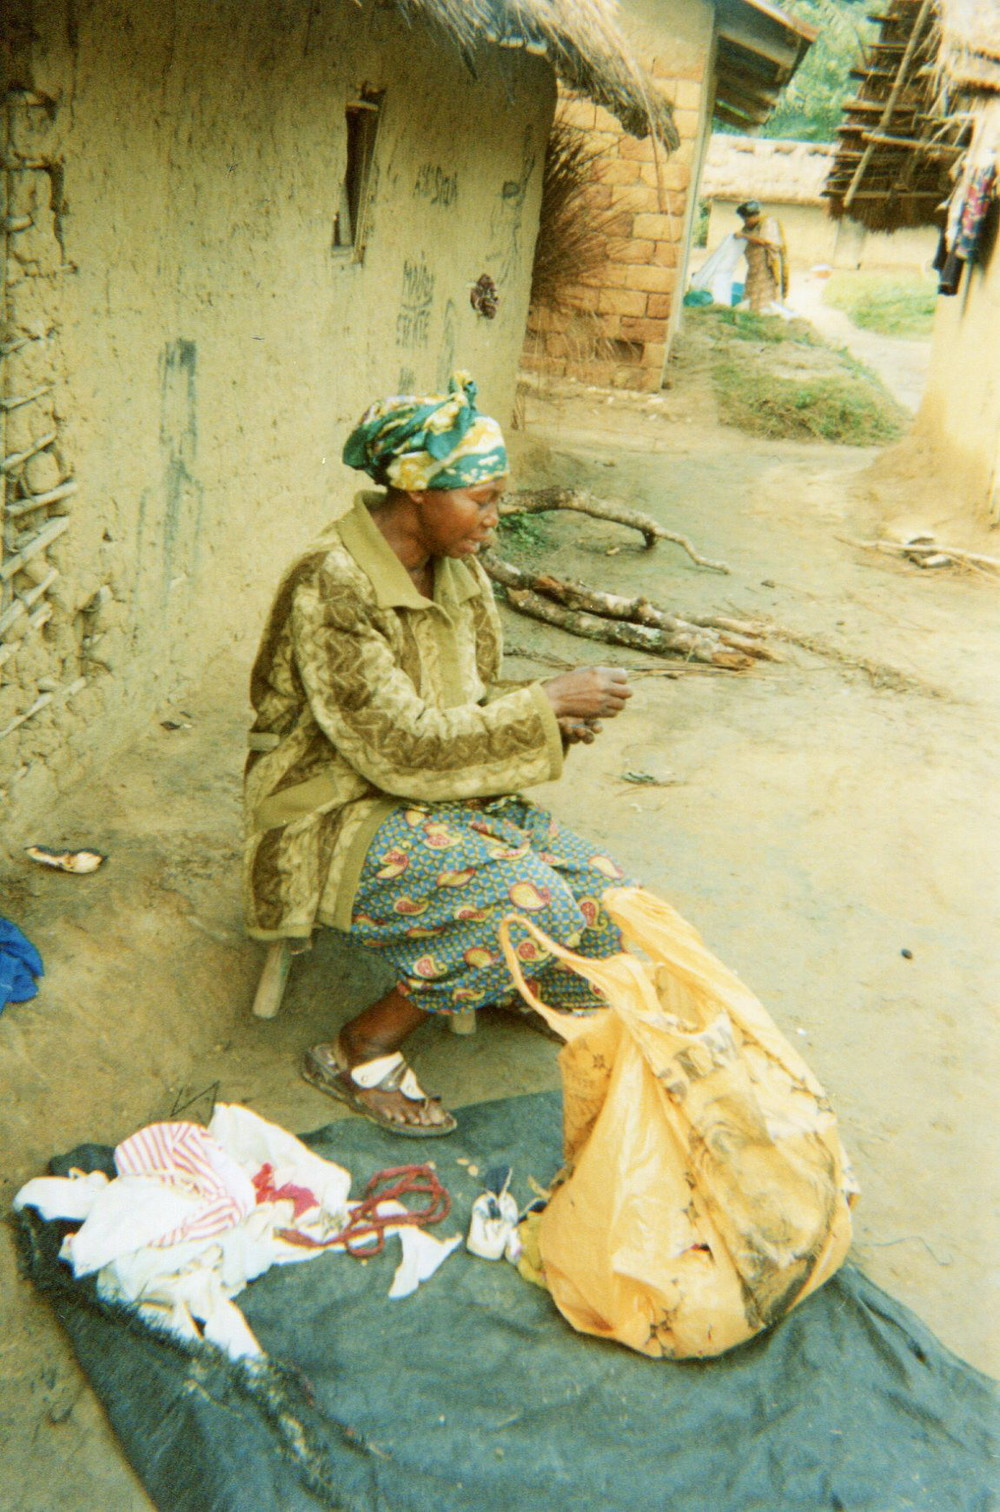 A woman sews clothes.